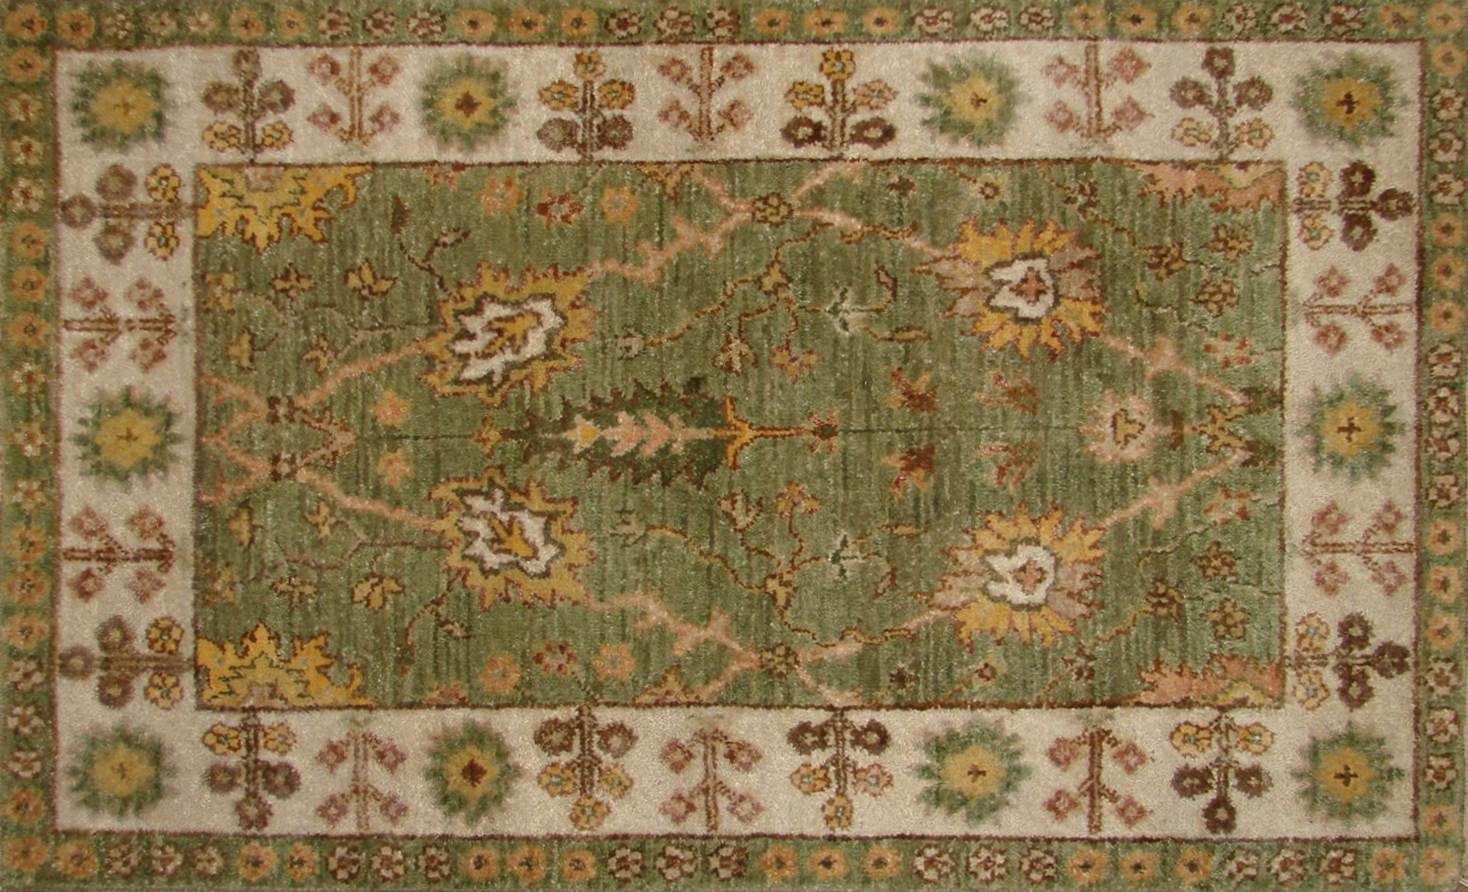 2X3 Traditional Hand Knotted Wool Area Rug - MR19869